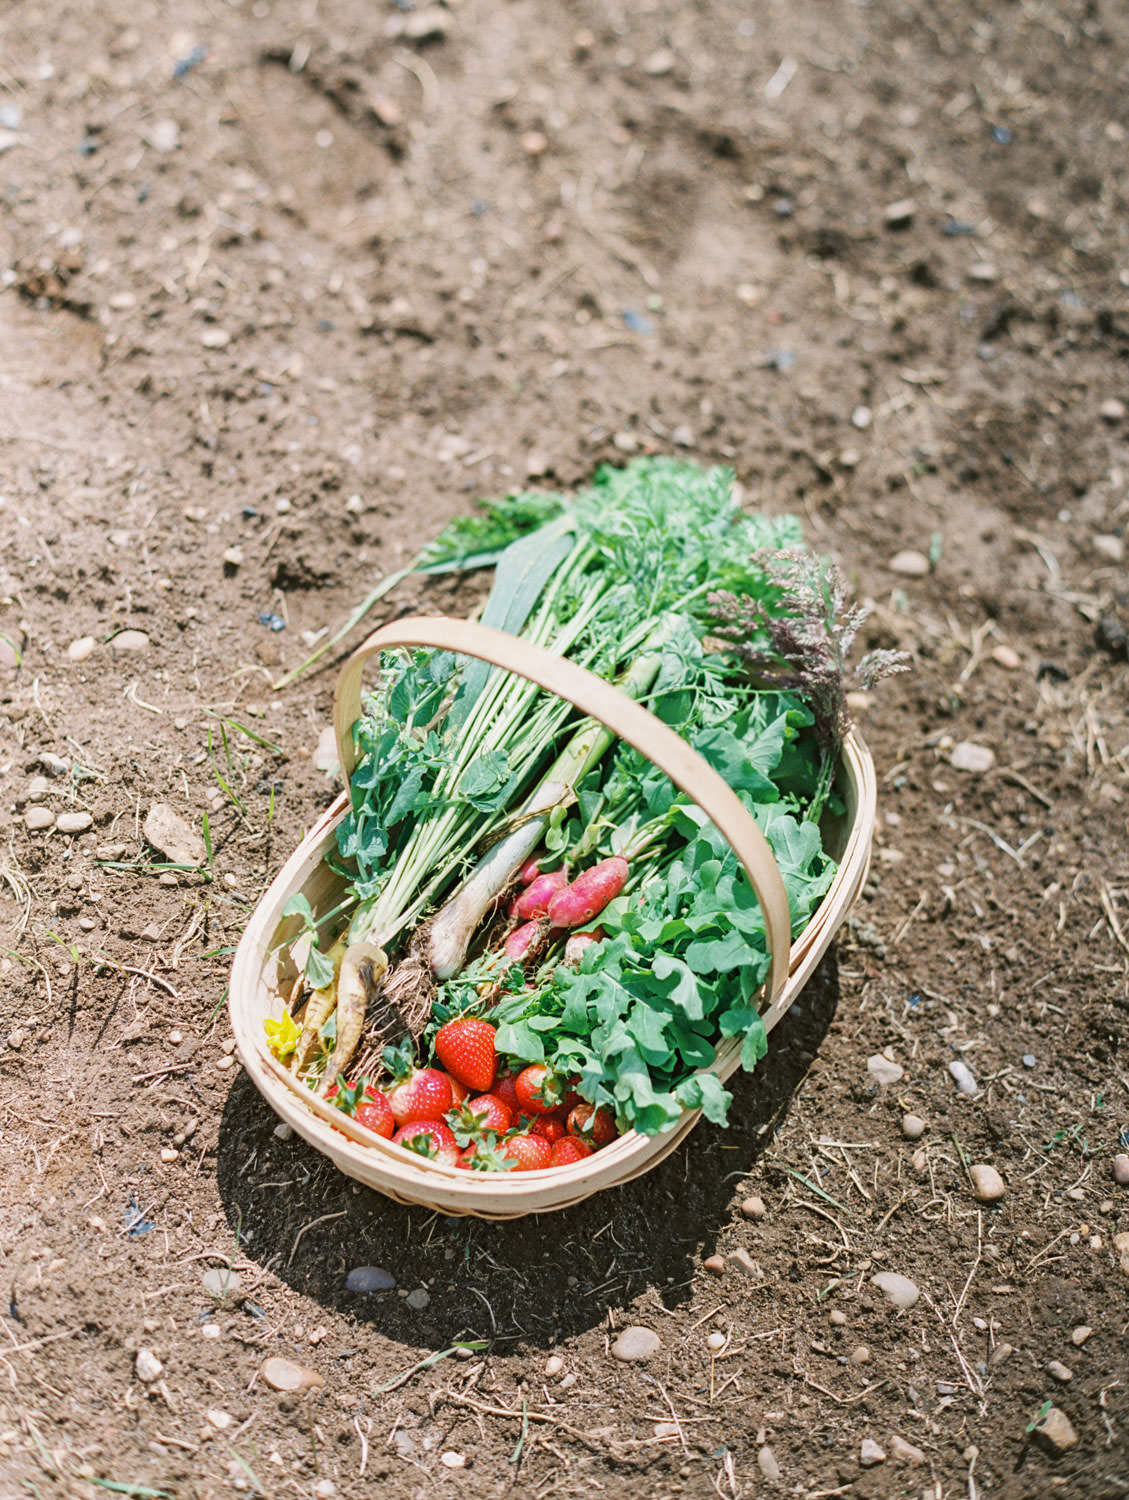 Daylesford Farm wooden basket filled with carrots, radishes, strawberries, arugula, and green onions.. Flutter Magazine Retreat in the Cotswolds, England. Photo by Cavin Elizabeth Photography on film